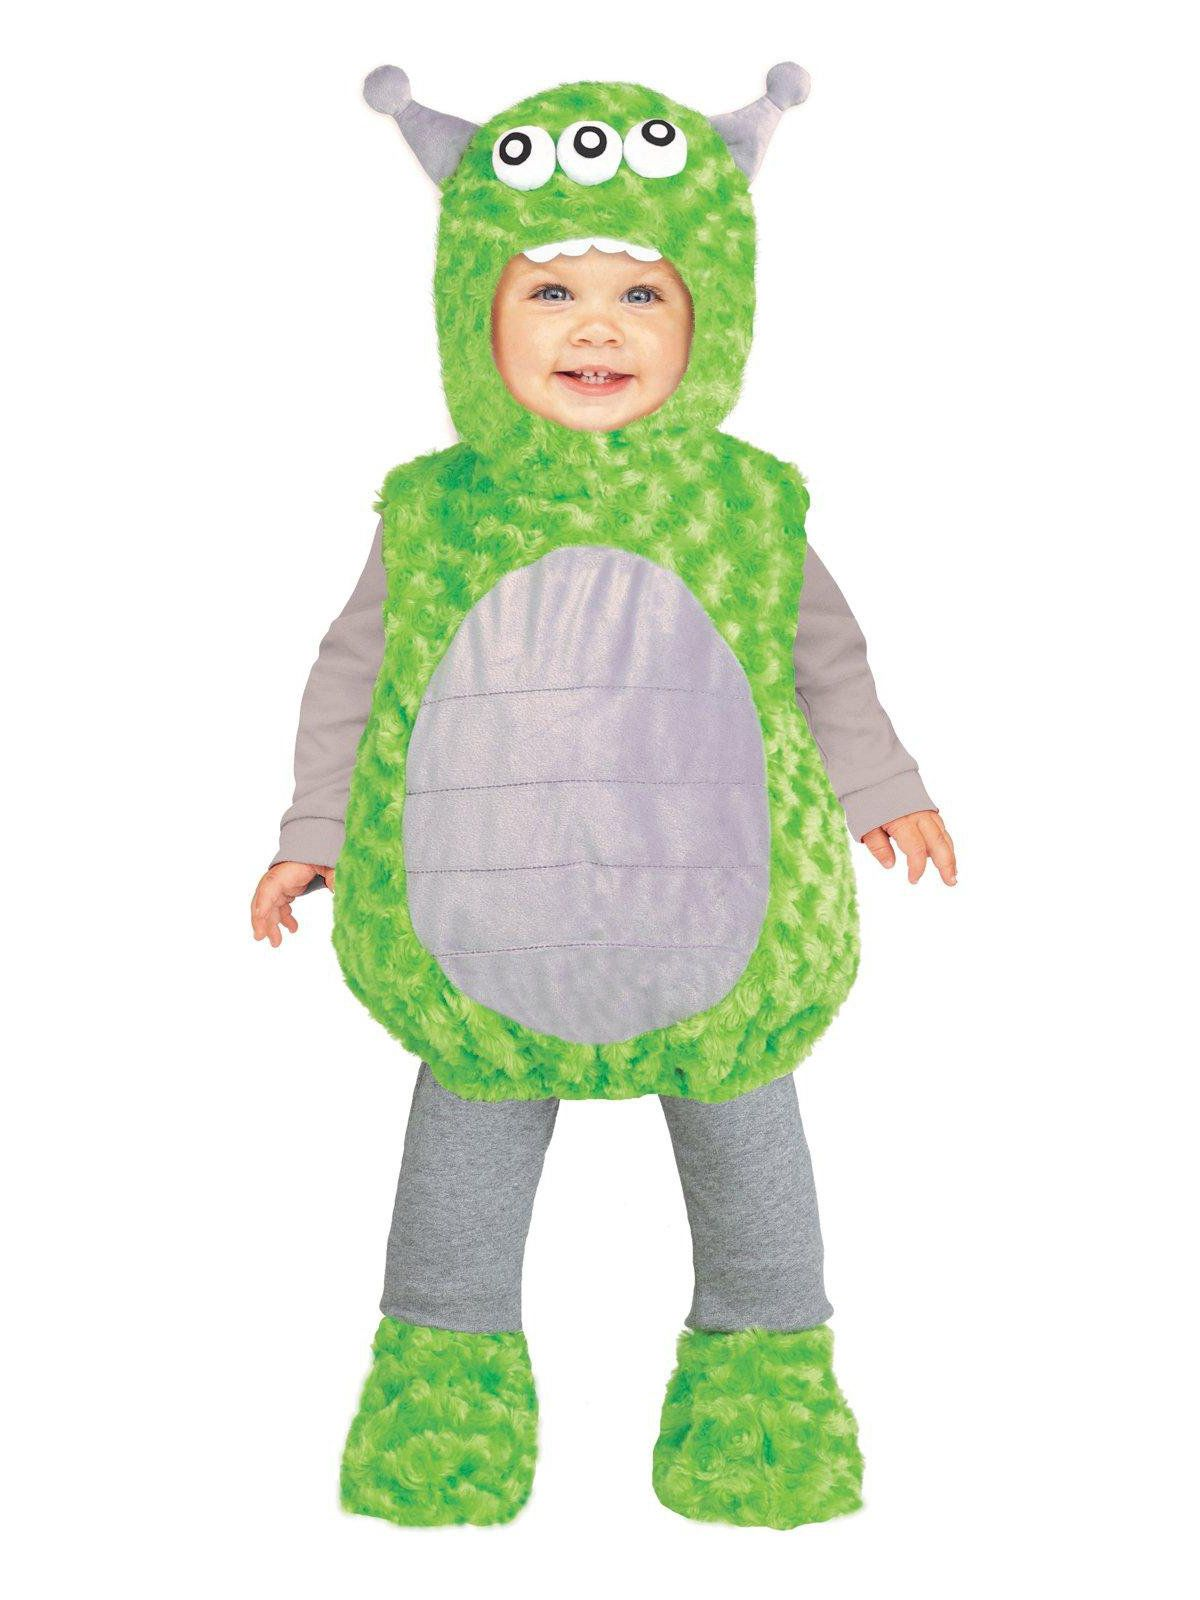 Baby Lilu0027 Alien Costume For Babies  sc 1 st  Wholesale Halloween Costumes & Baby Lilu0027 Alien Costume For Babies | Wholesale Halloween Costumes